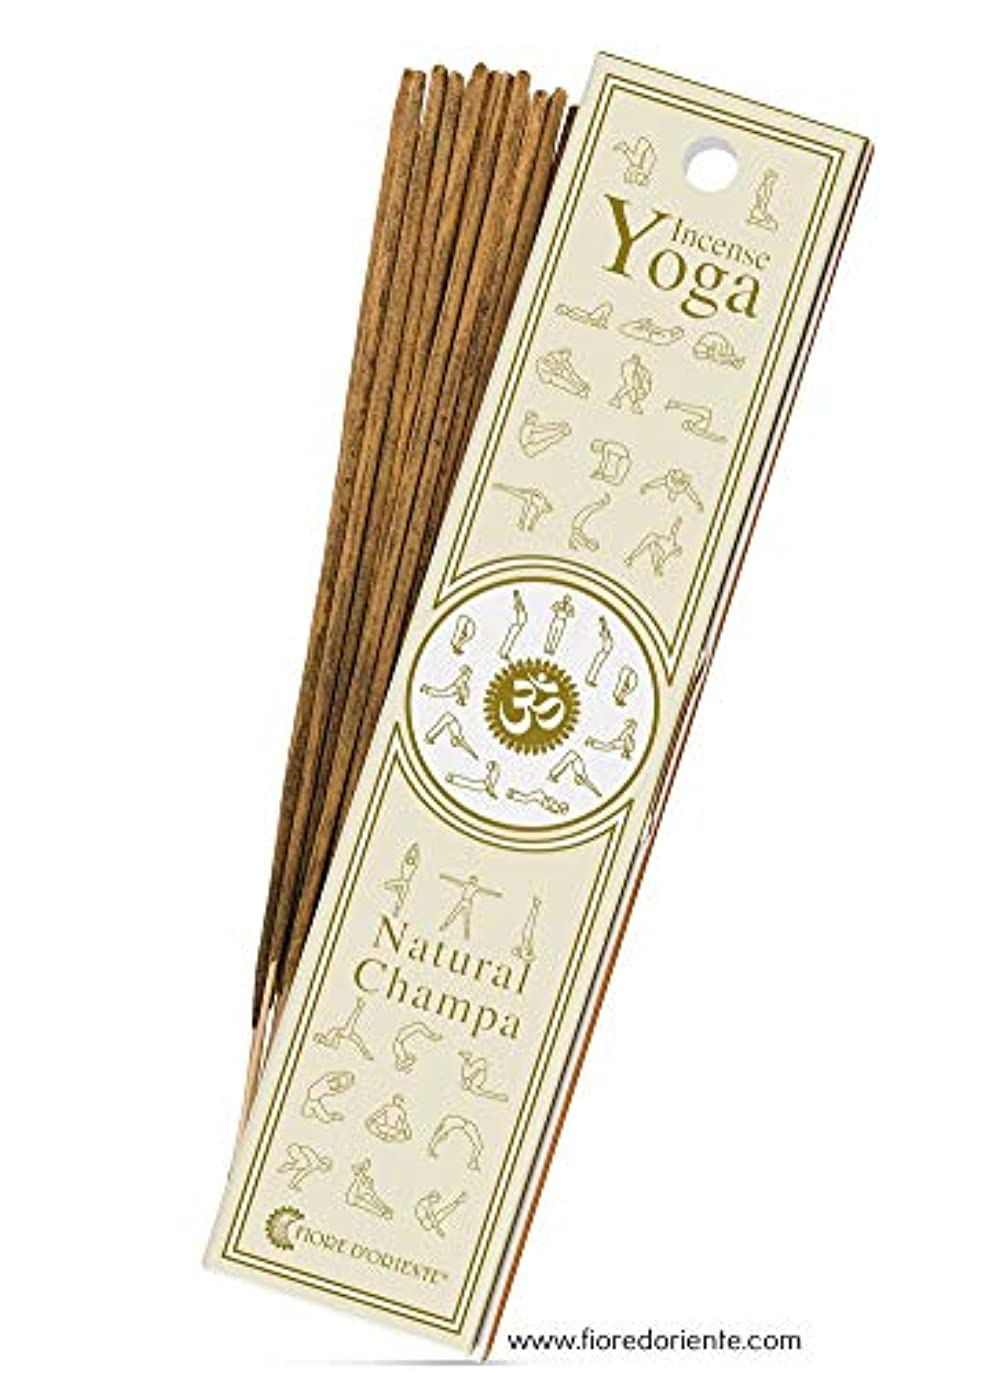 リサイクルするケーキ申し込むNatural Champa?–?ヨガ?–?Natural Incense Sticks 10?PZS?–?Natural Incense会社